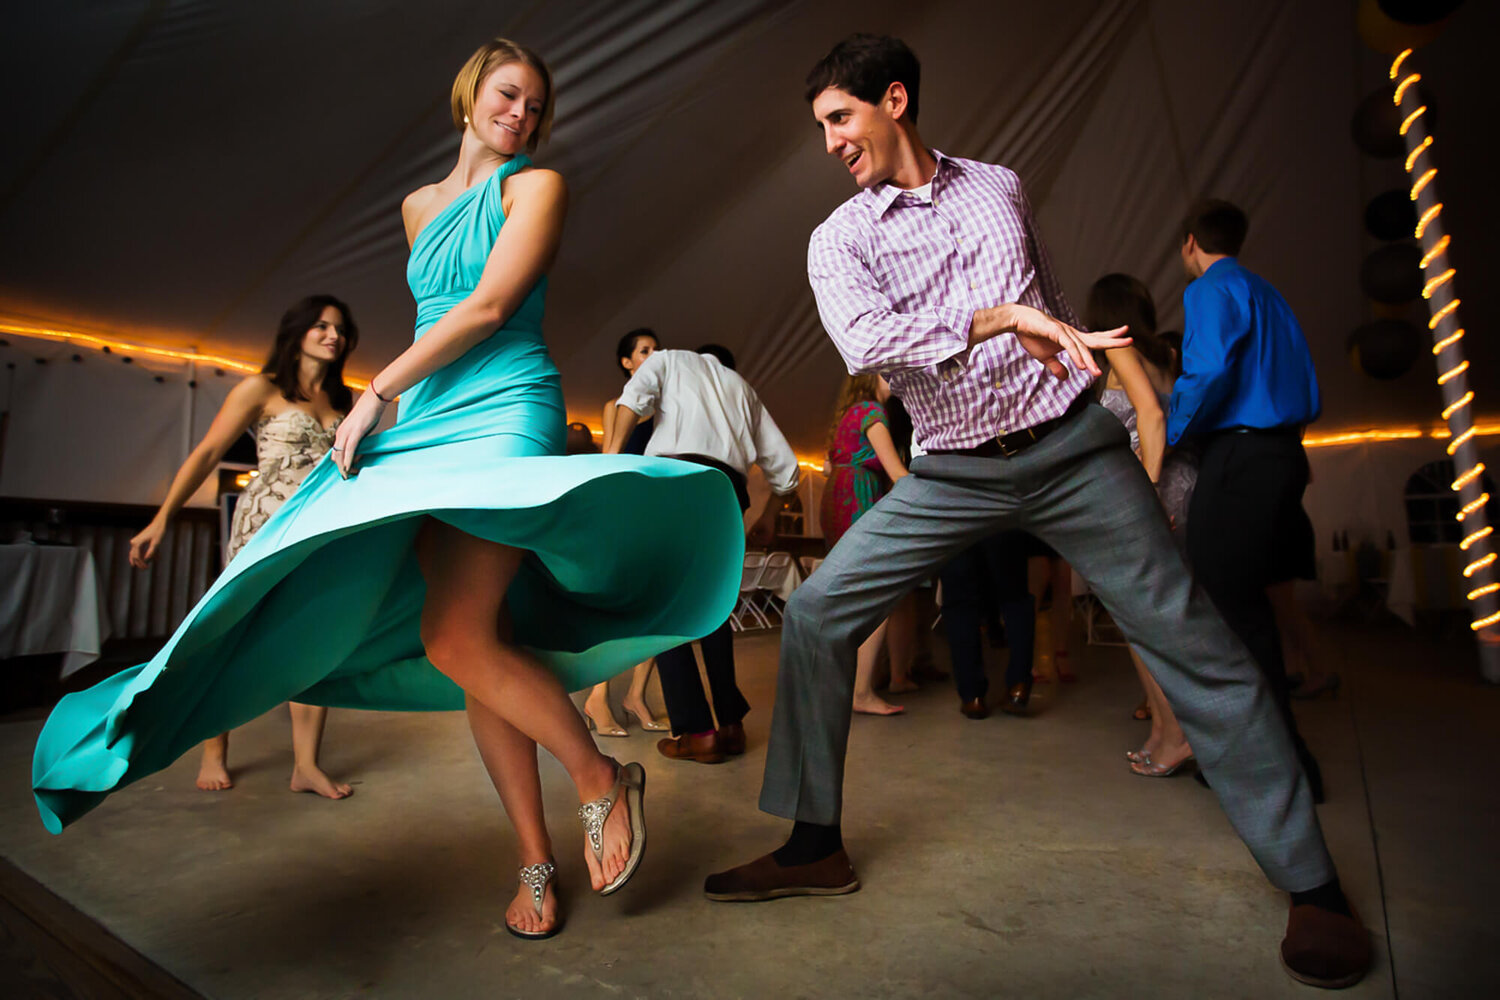 02-st-louis-wedding-guests-dancing-dress-spinning.jpg